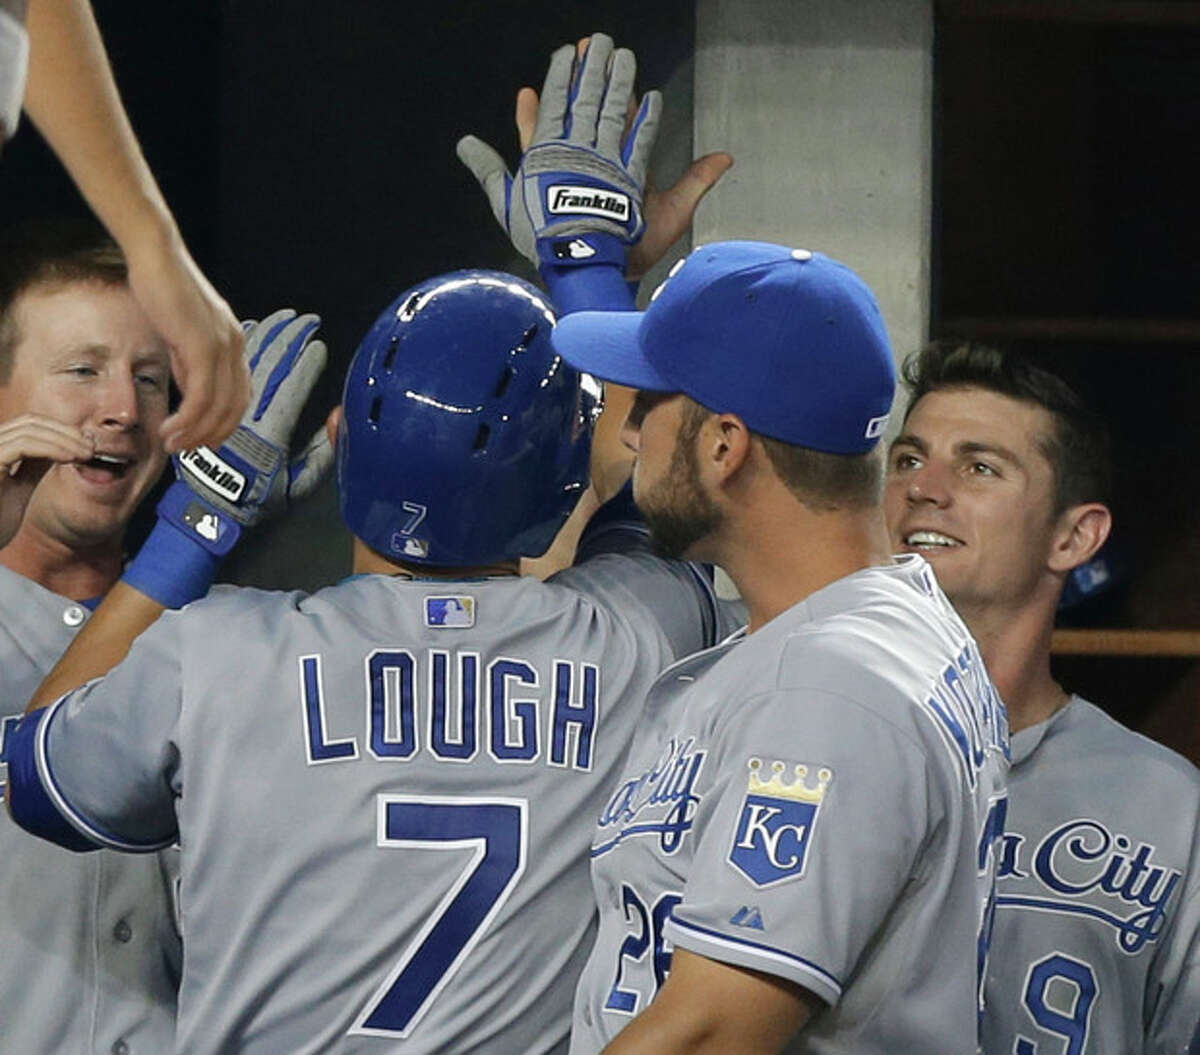 Kansas City Royals congratulate David Lough after his sixth-inning solo home run off New York Yankees starting pitcher CC Sabathia in a baseball game Tuesday, July 9, 2013, in New York. (AP Photo/Kathy Willens)